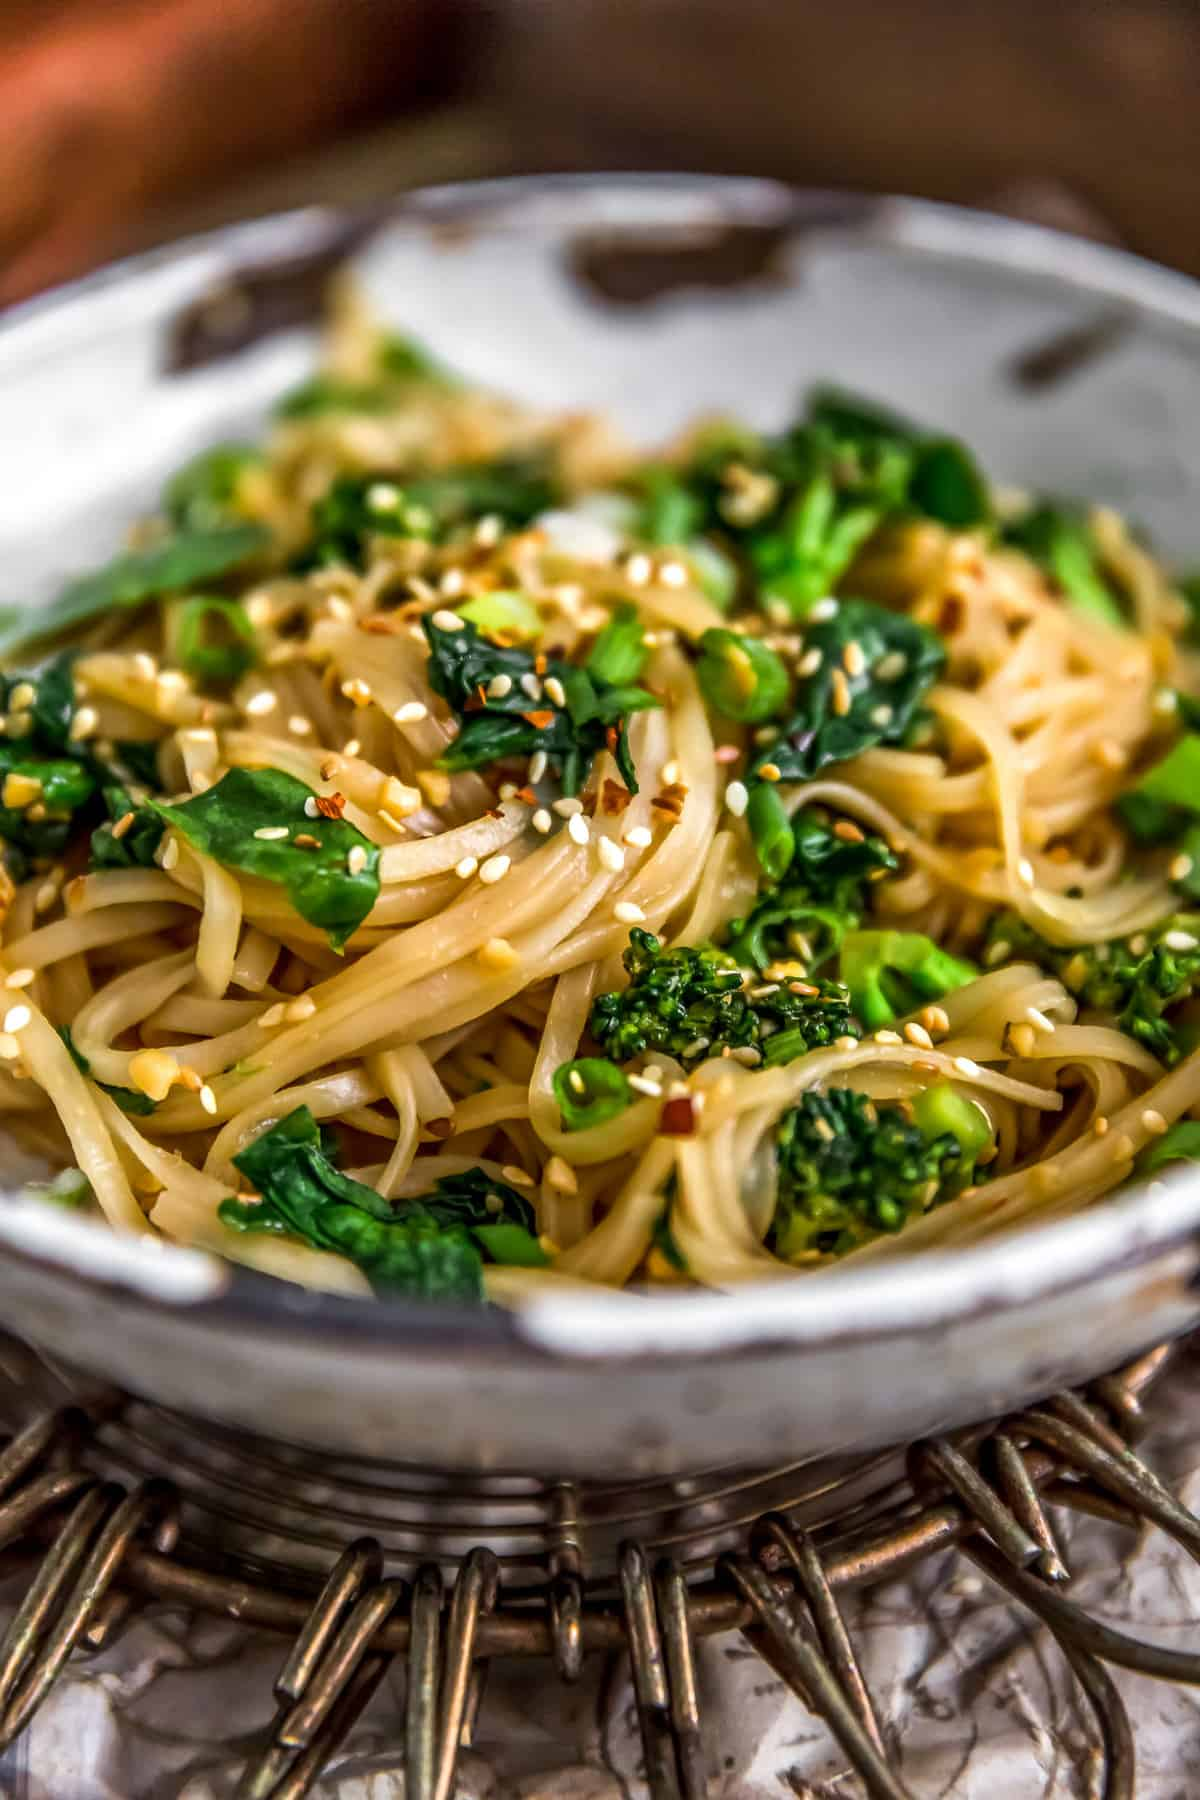 Sideview of Oil Free Garlic Sticky Noodles